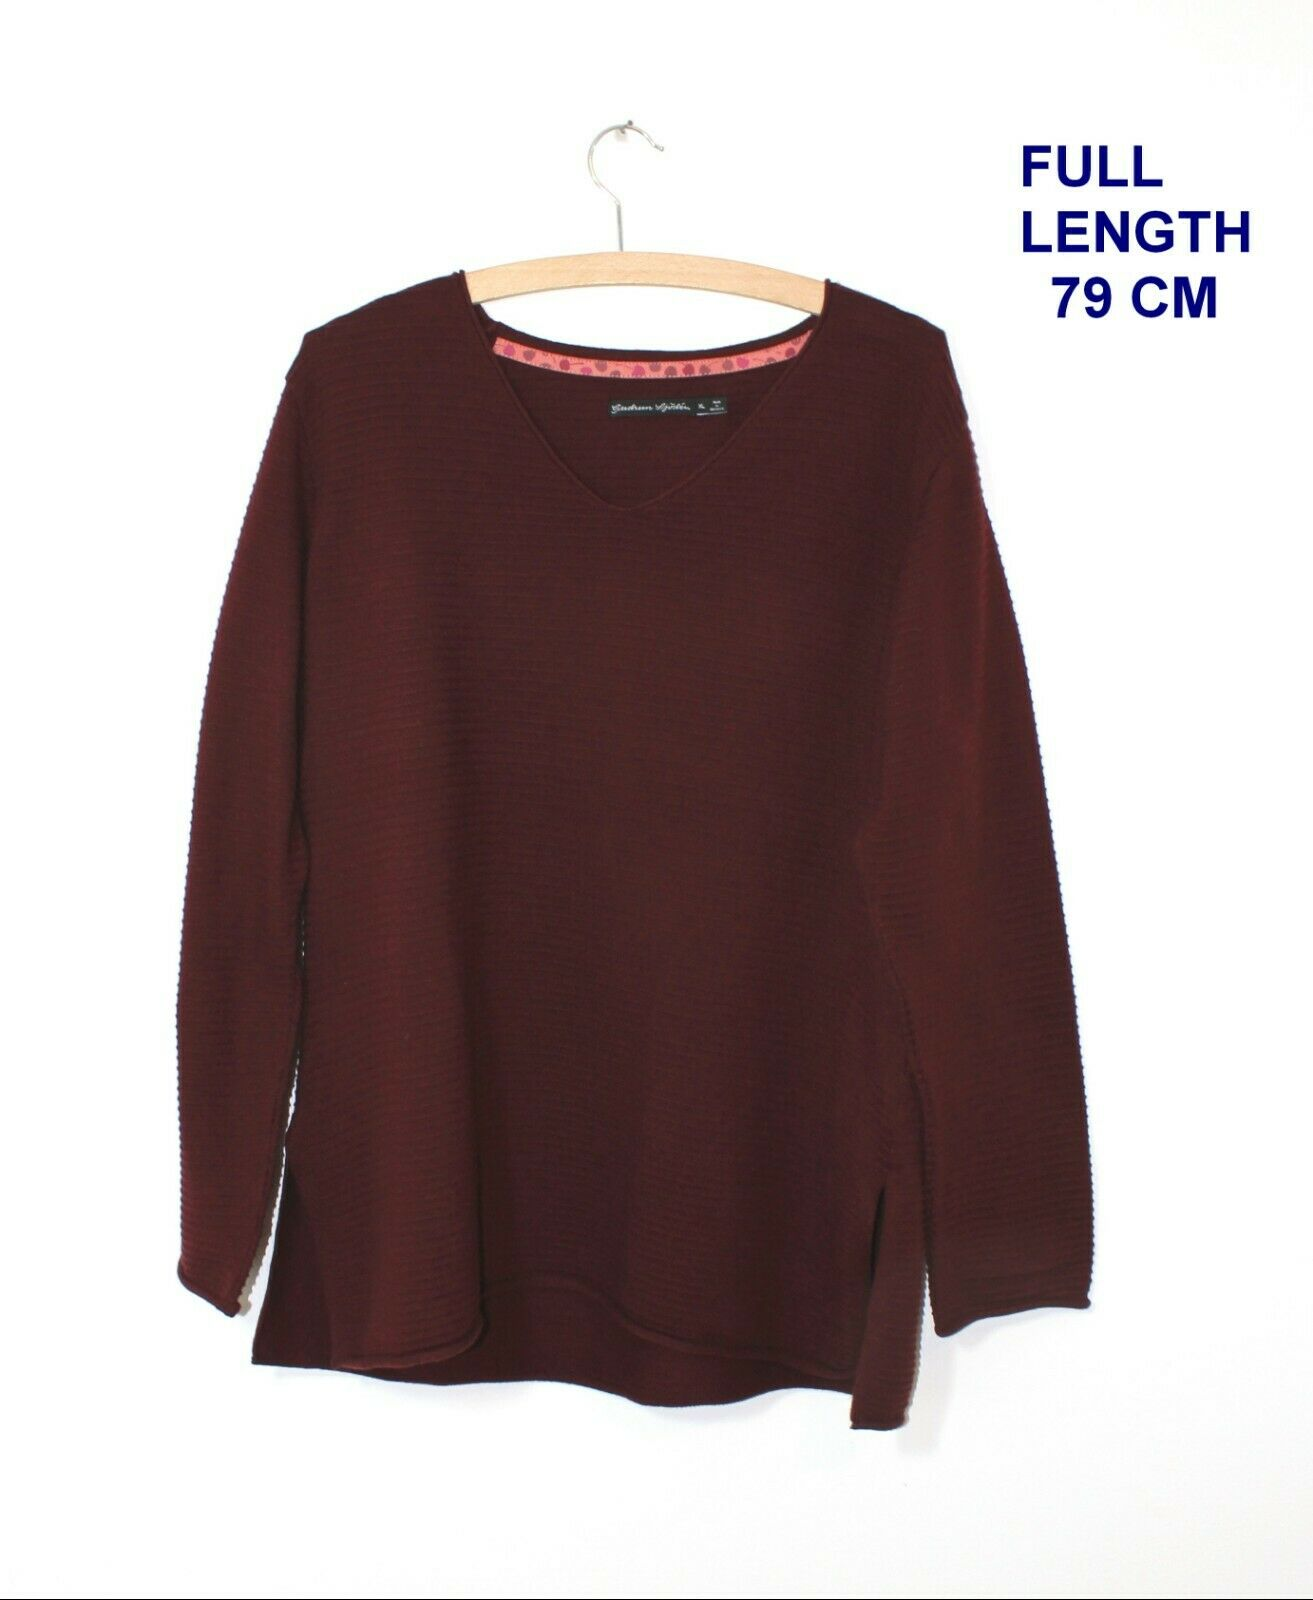 GUDRUN SJODEN SJÖDÉN  LADIES WOMAN BLOUSE SHIRT MARKED Größe XL BURGUNDY Farbe